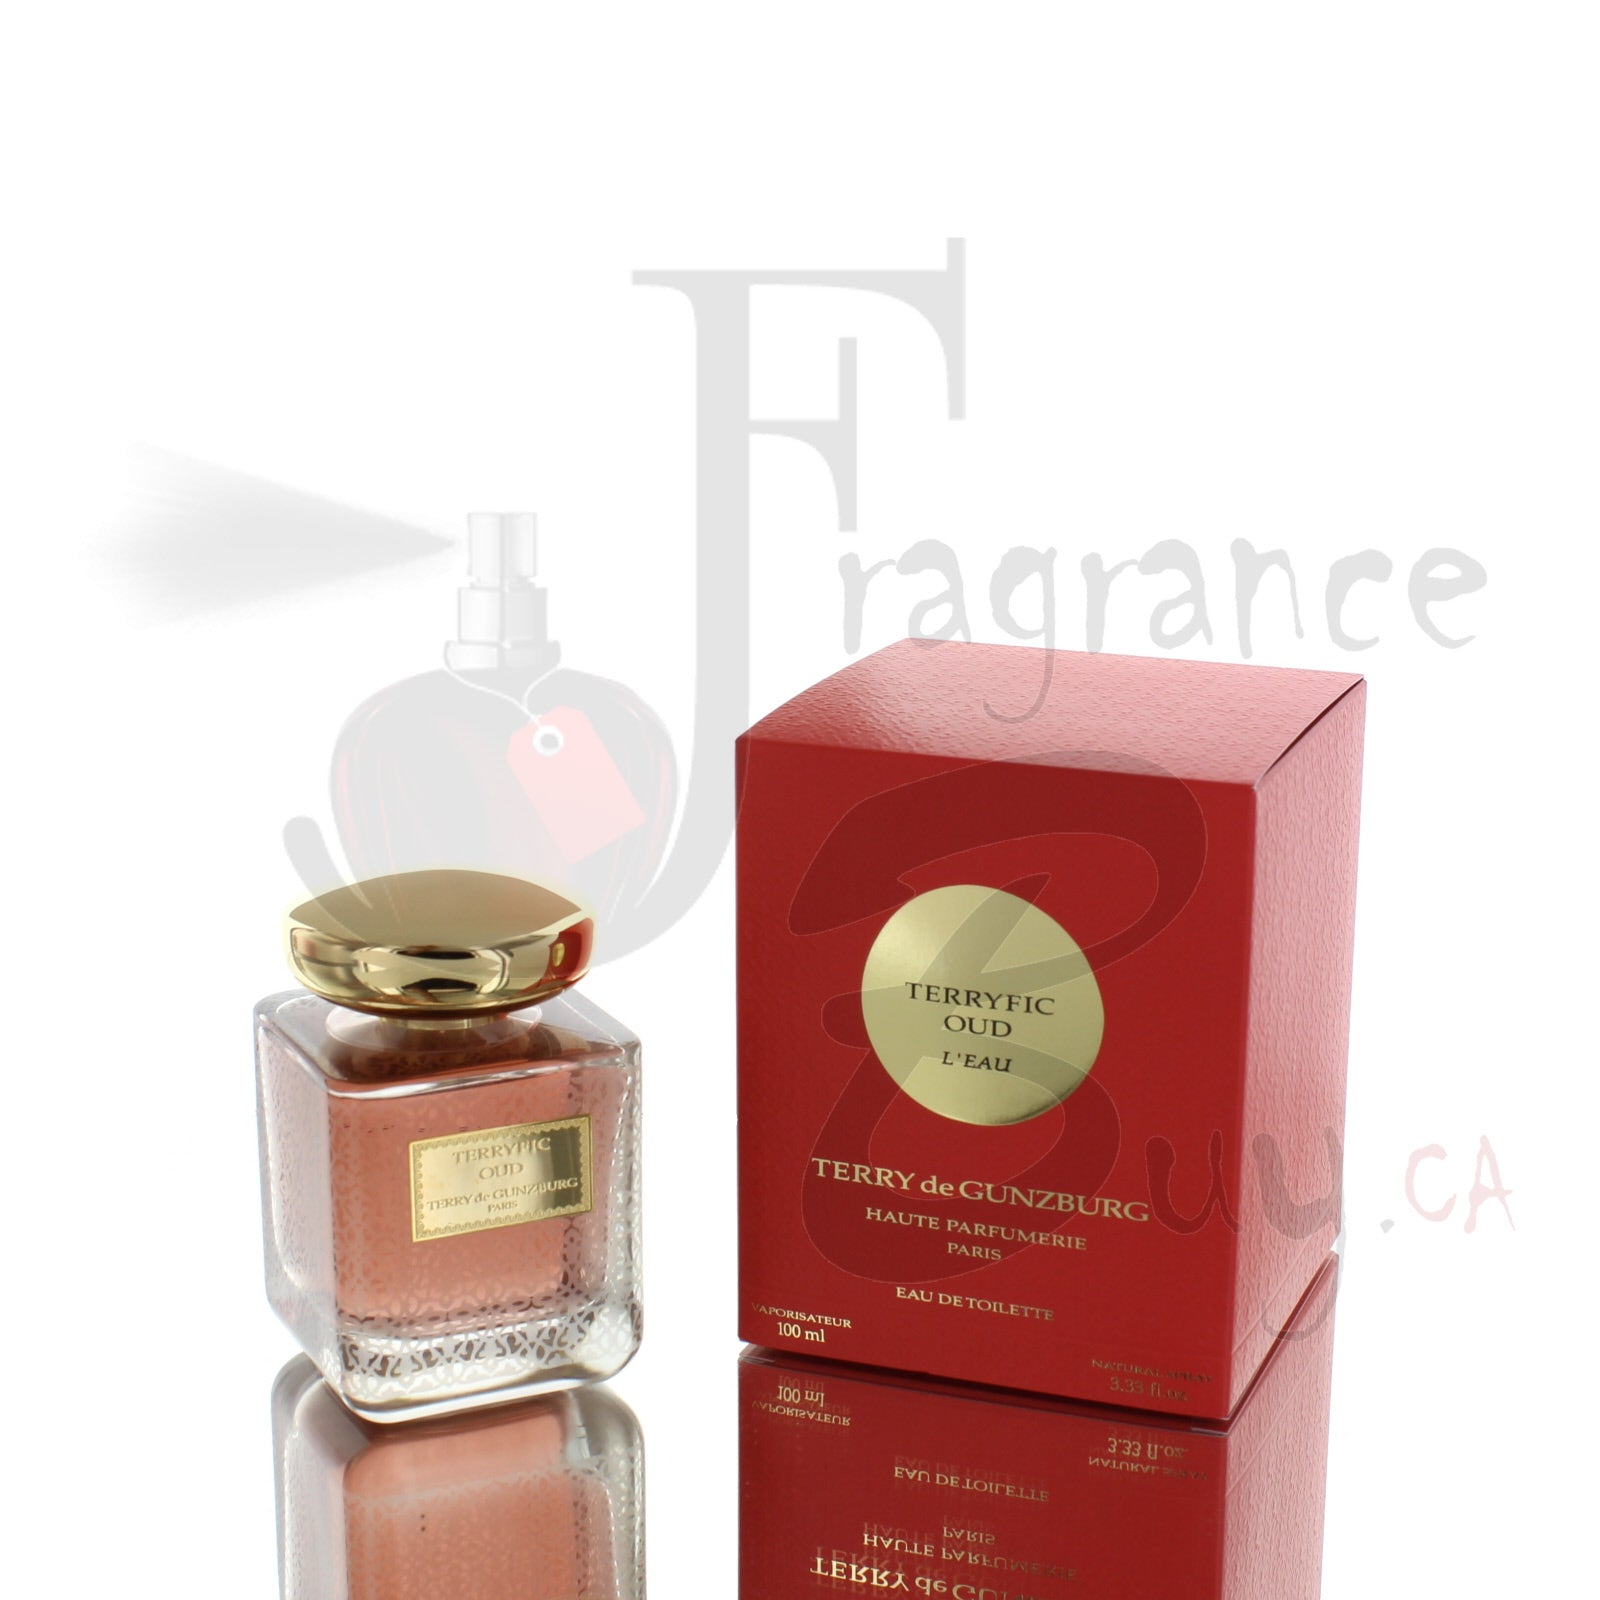 Terry de Gunzburg Terryfic Oud L'eau For Man/Woman